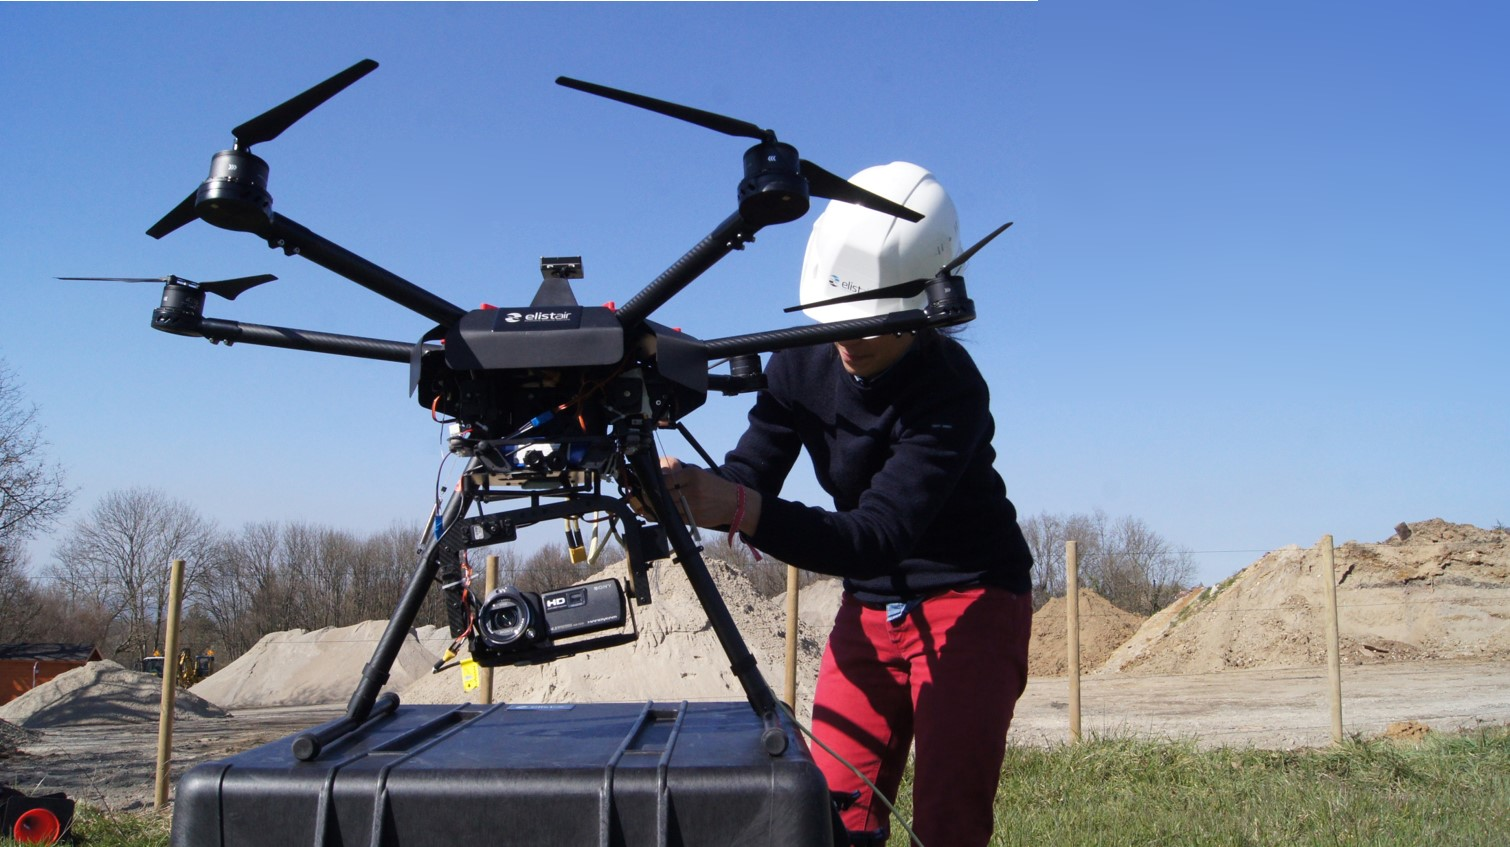 Elistair-tethered-drone-station-embarking-video-camera-for-road-traffic-monitoring-in-Lyon